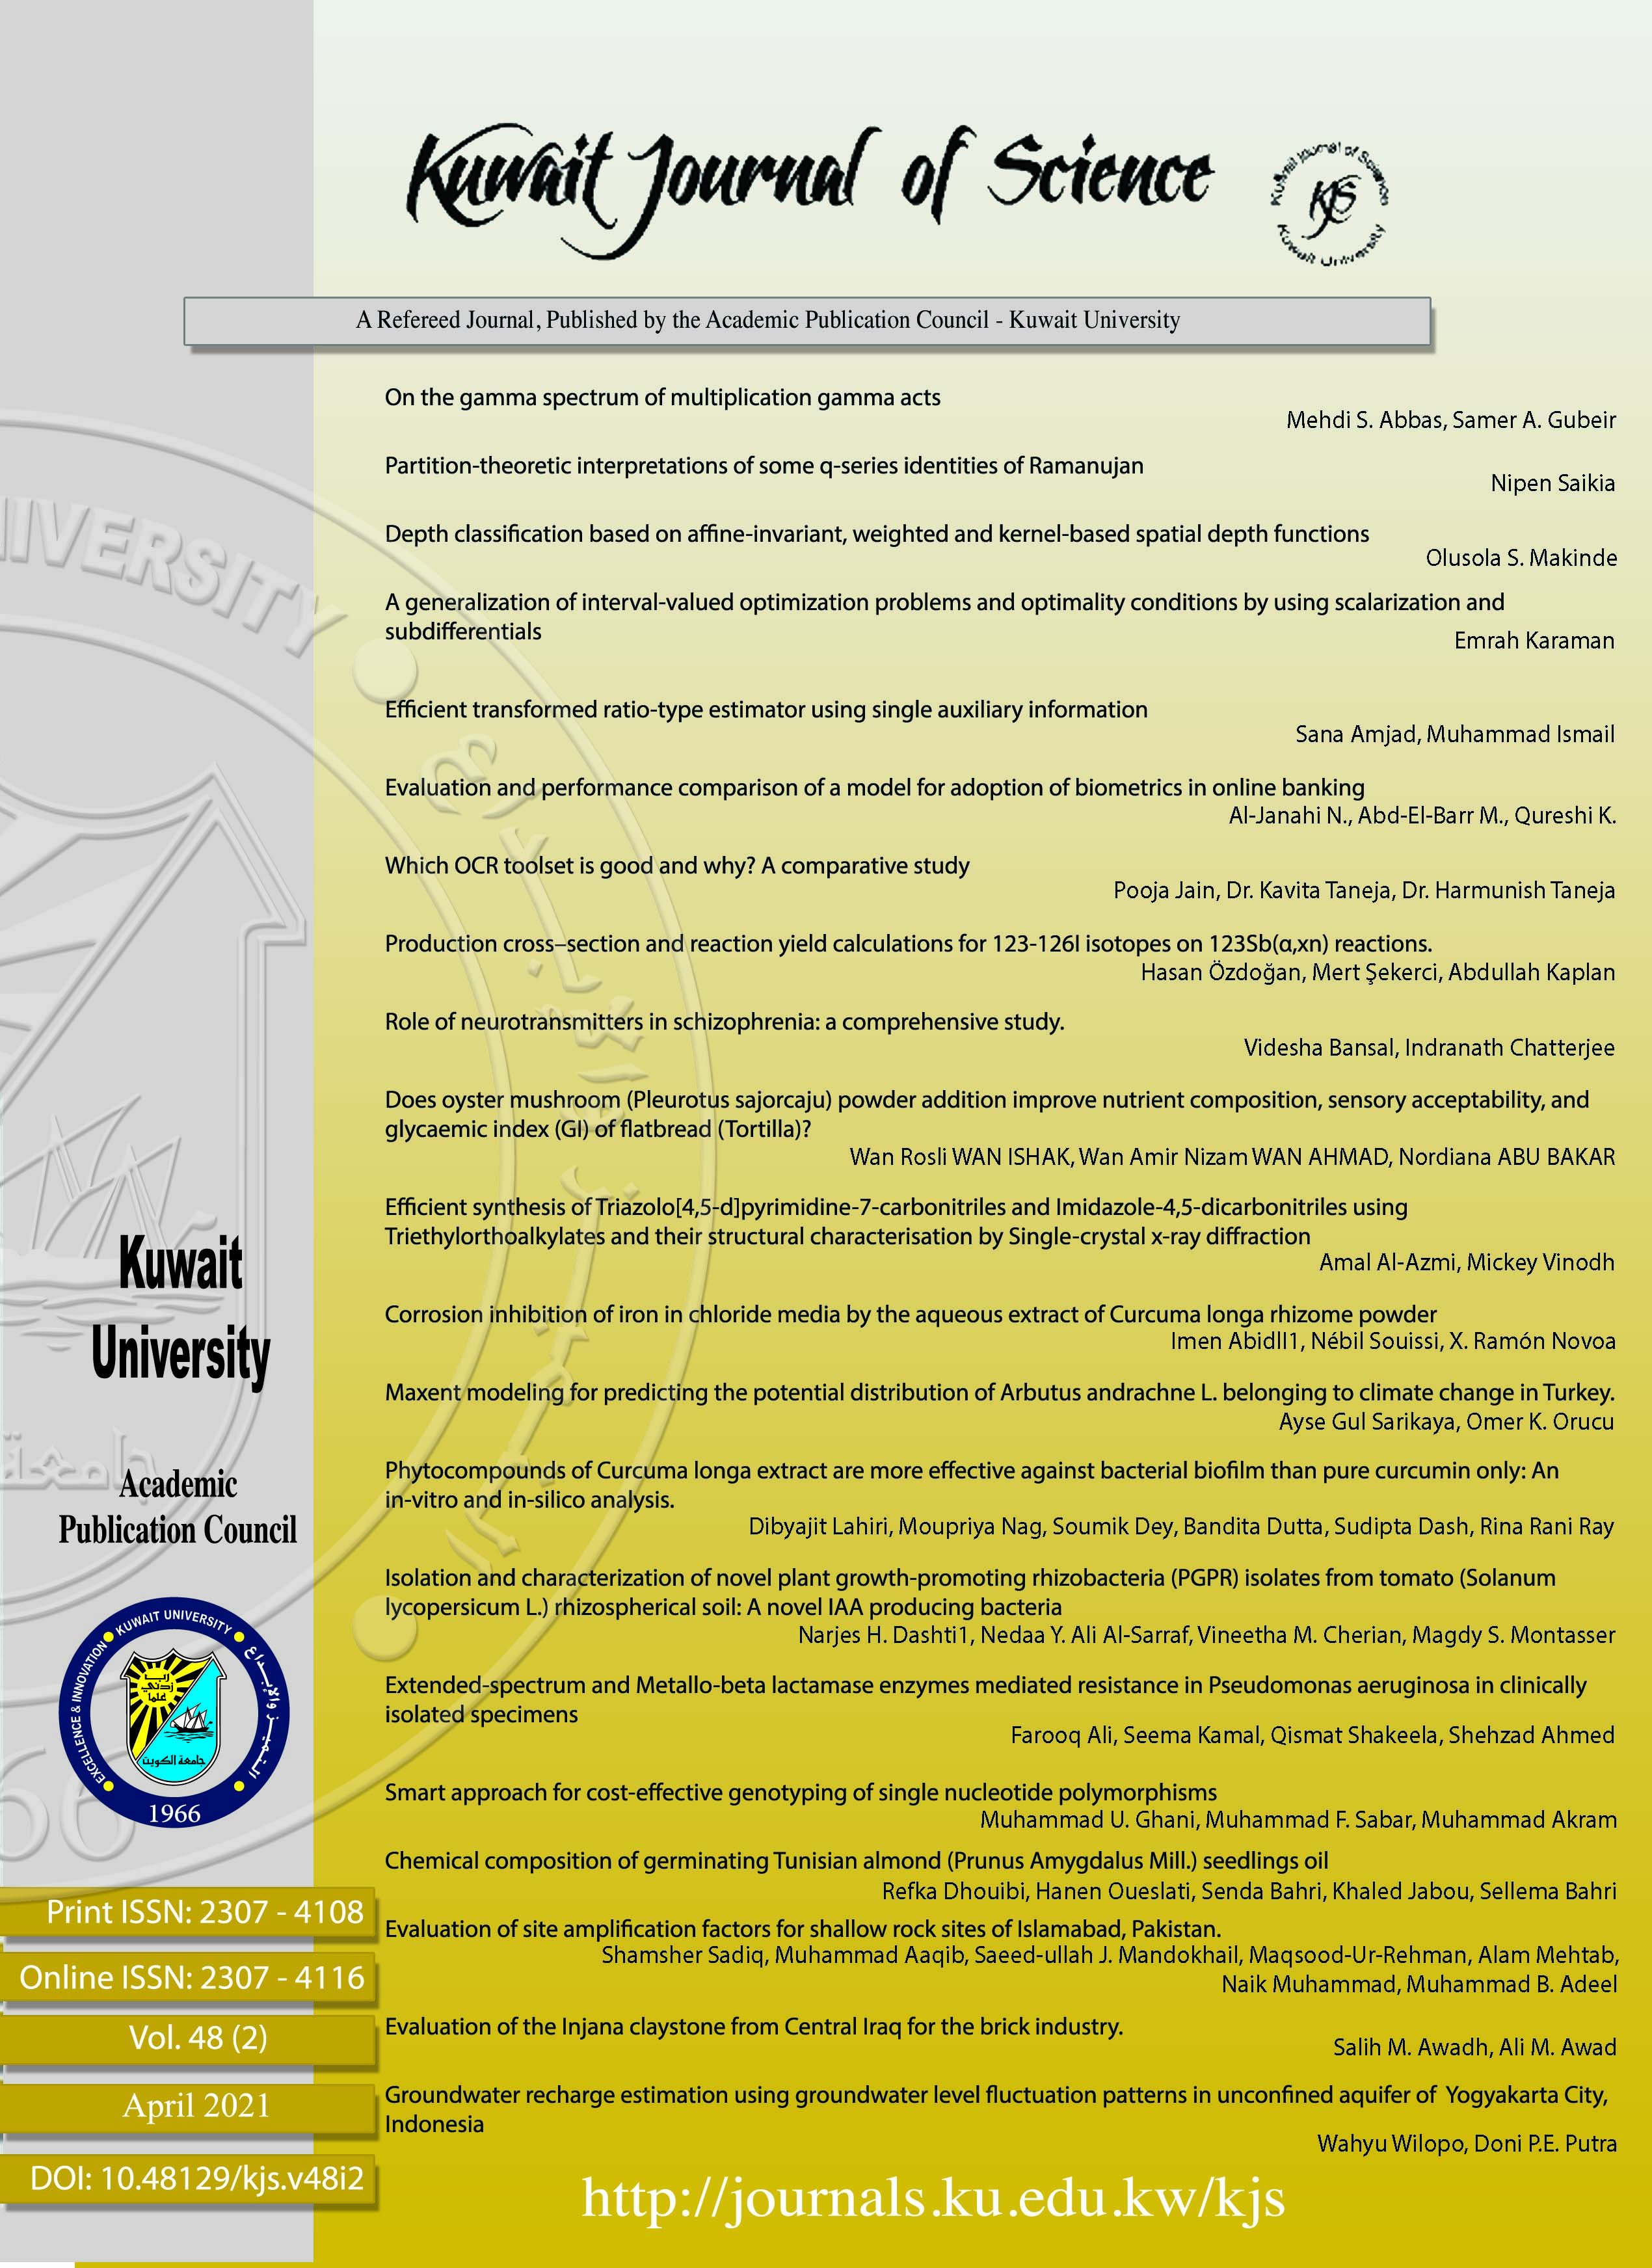 View Vol. 48 No. 2 (2021): Kuwait Journal of Science